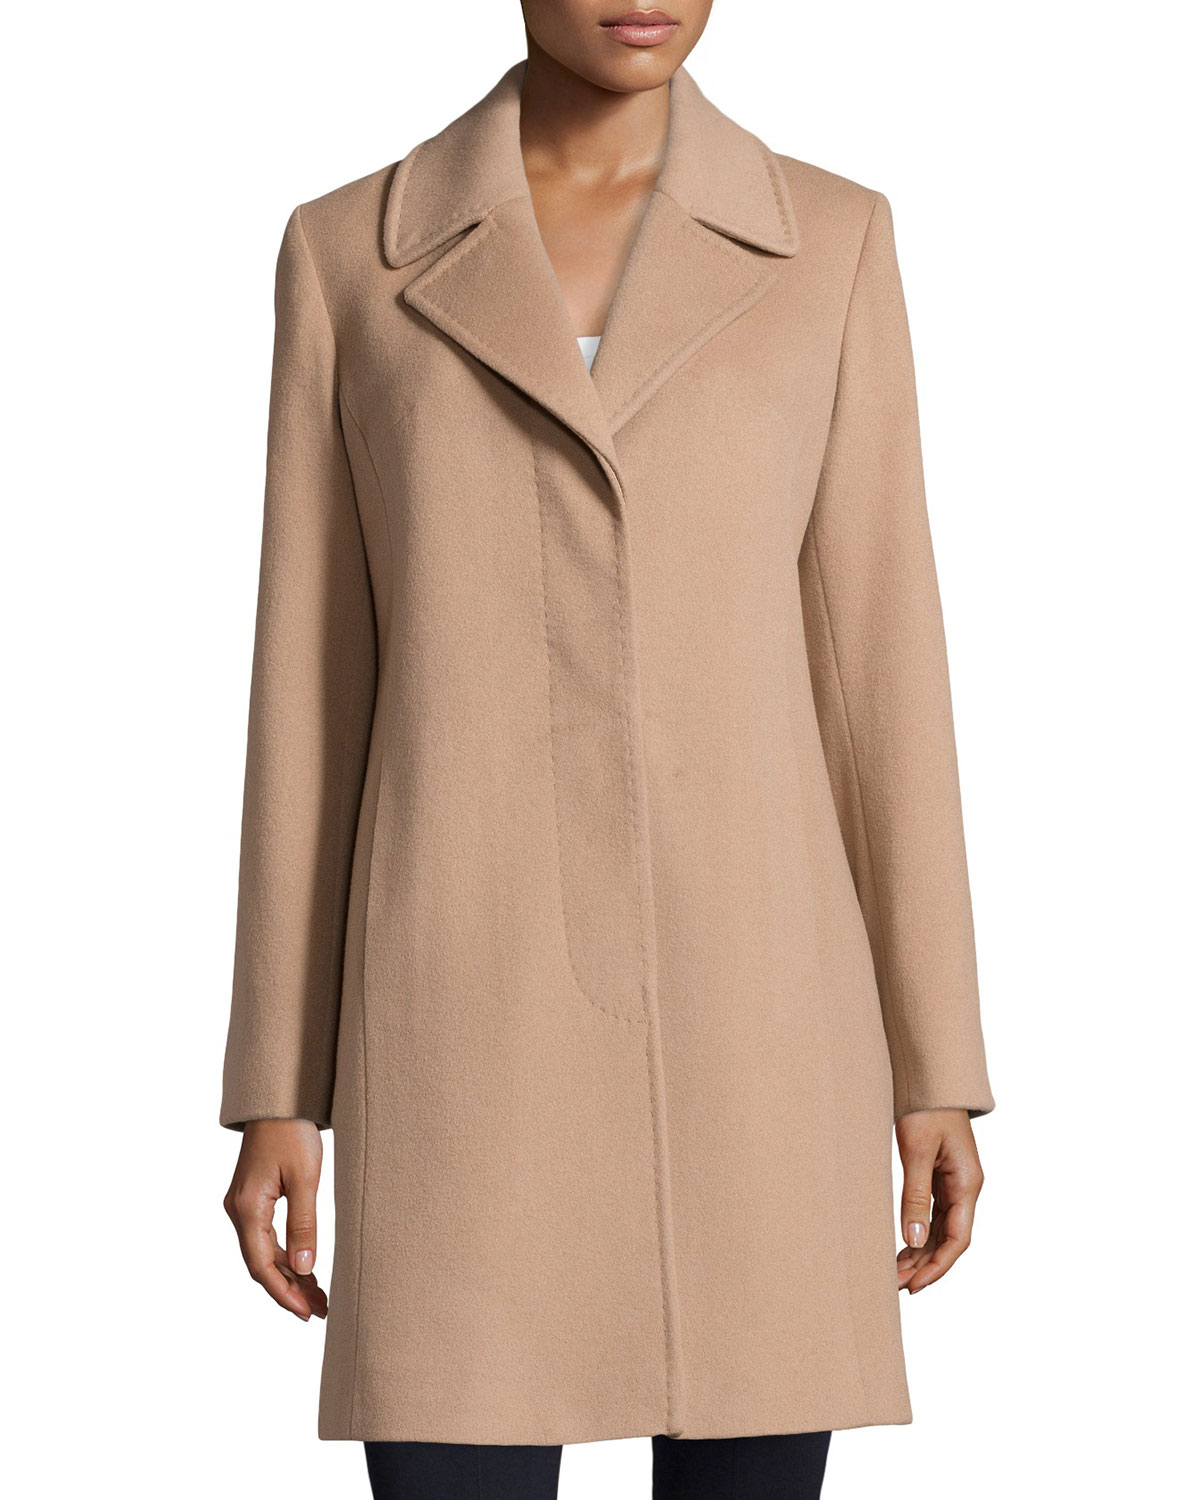 Fleurette Hidden-Button Wool-Blend Coat in Natural